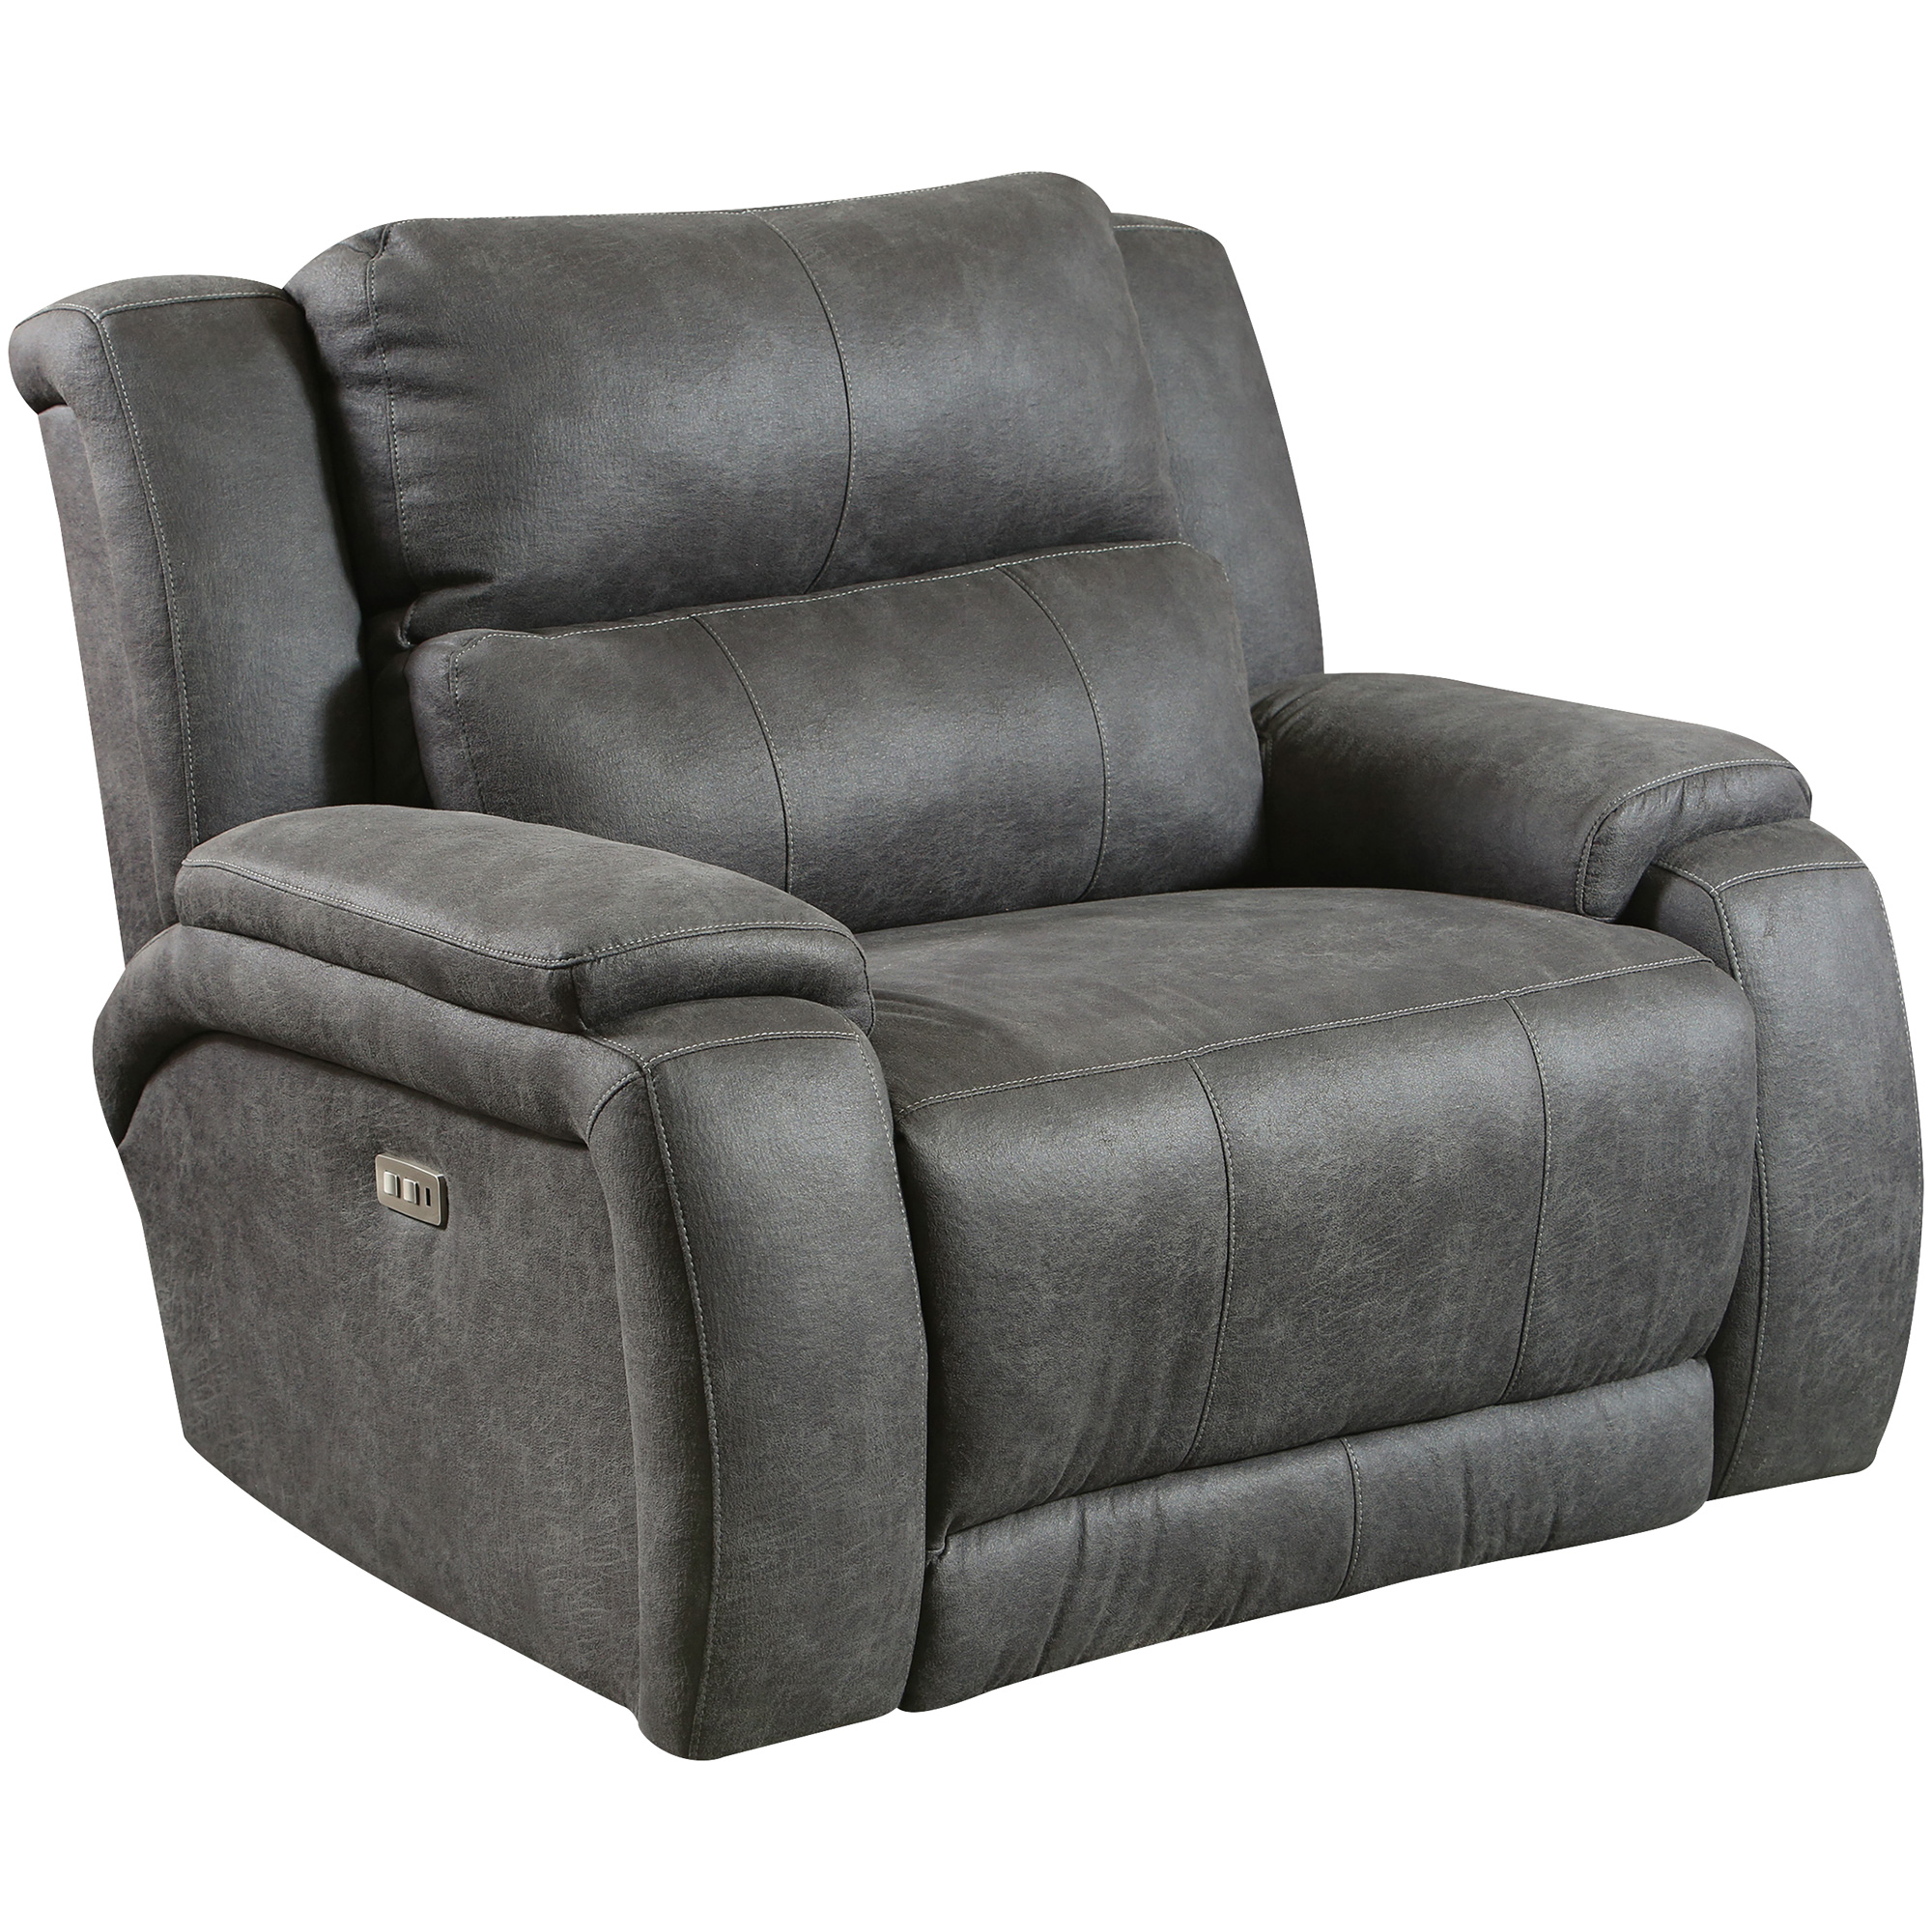 Southern Motion | Marquis Ink Power+ Next Level Recliner Chair